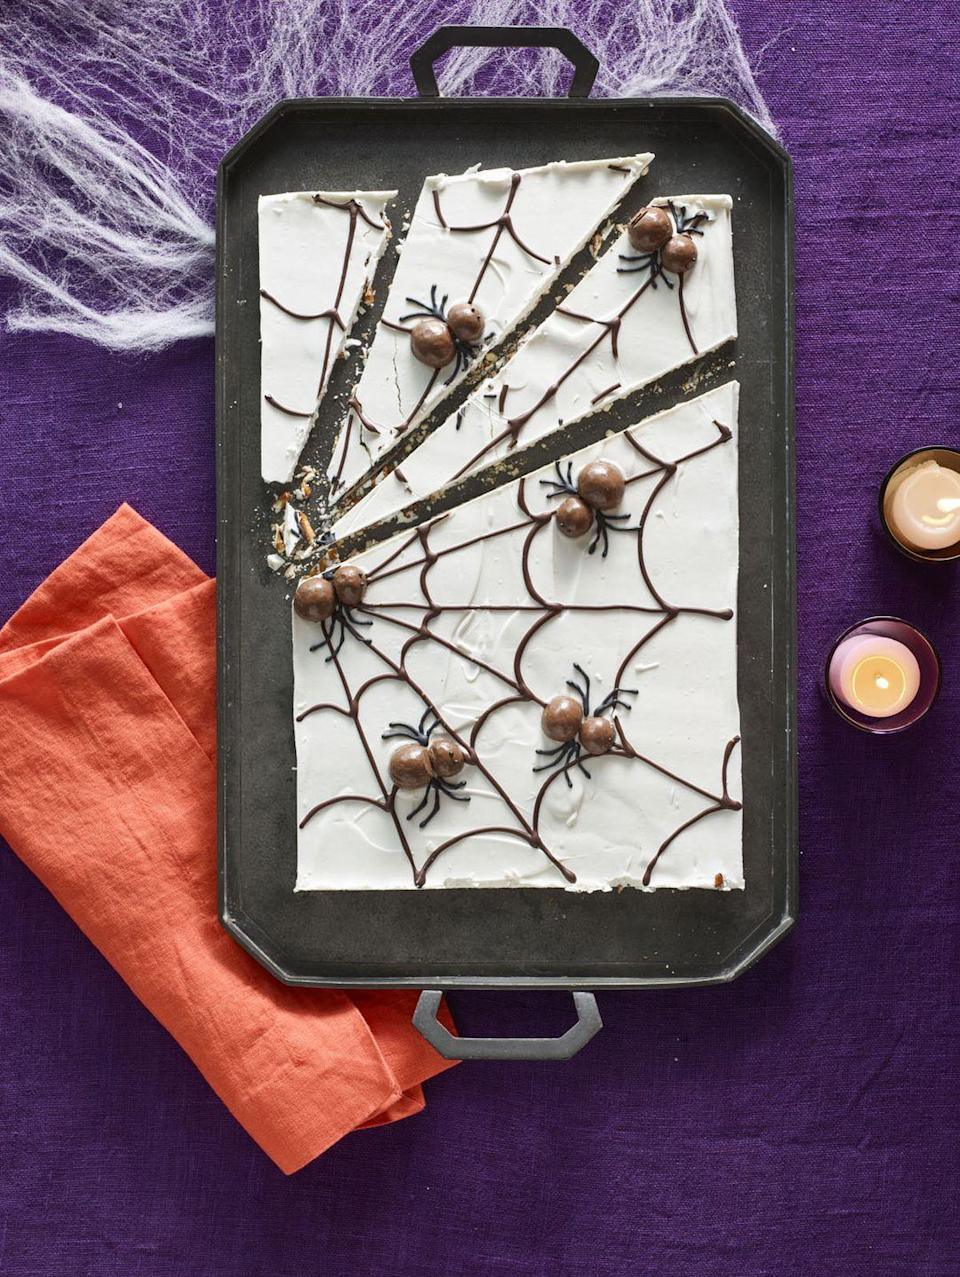 """<p>Chocoholics will go crazy for this pretzel web covered in white chocolate, drizzled with semi-sweet chocolate, and decorated with chocolate malt-ball spiders.</p><p><em><strong><a href=""""https://www.womansday.com/food-recipes/food-drinks/recipes/a60166/candy-cobwebs-recipe/"""" rel=""""nofollow noopener"""" target=""""_blank"""" data-ylk=""""slk:Get the Candy Cobwebs recipe."""" class=""""link rapid-noclick-resp"""">Get the Candy Cobwebs recipe.</a></strong></em></p>"""